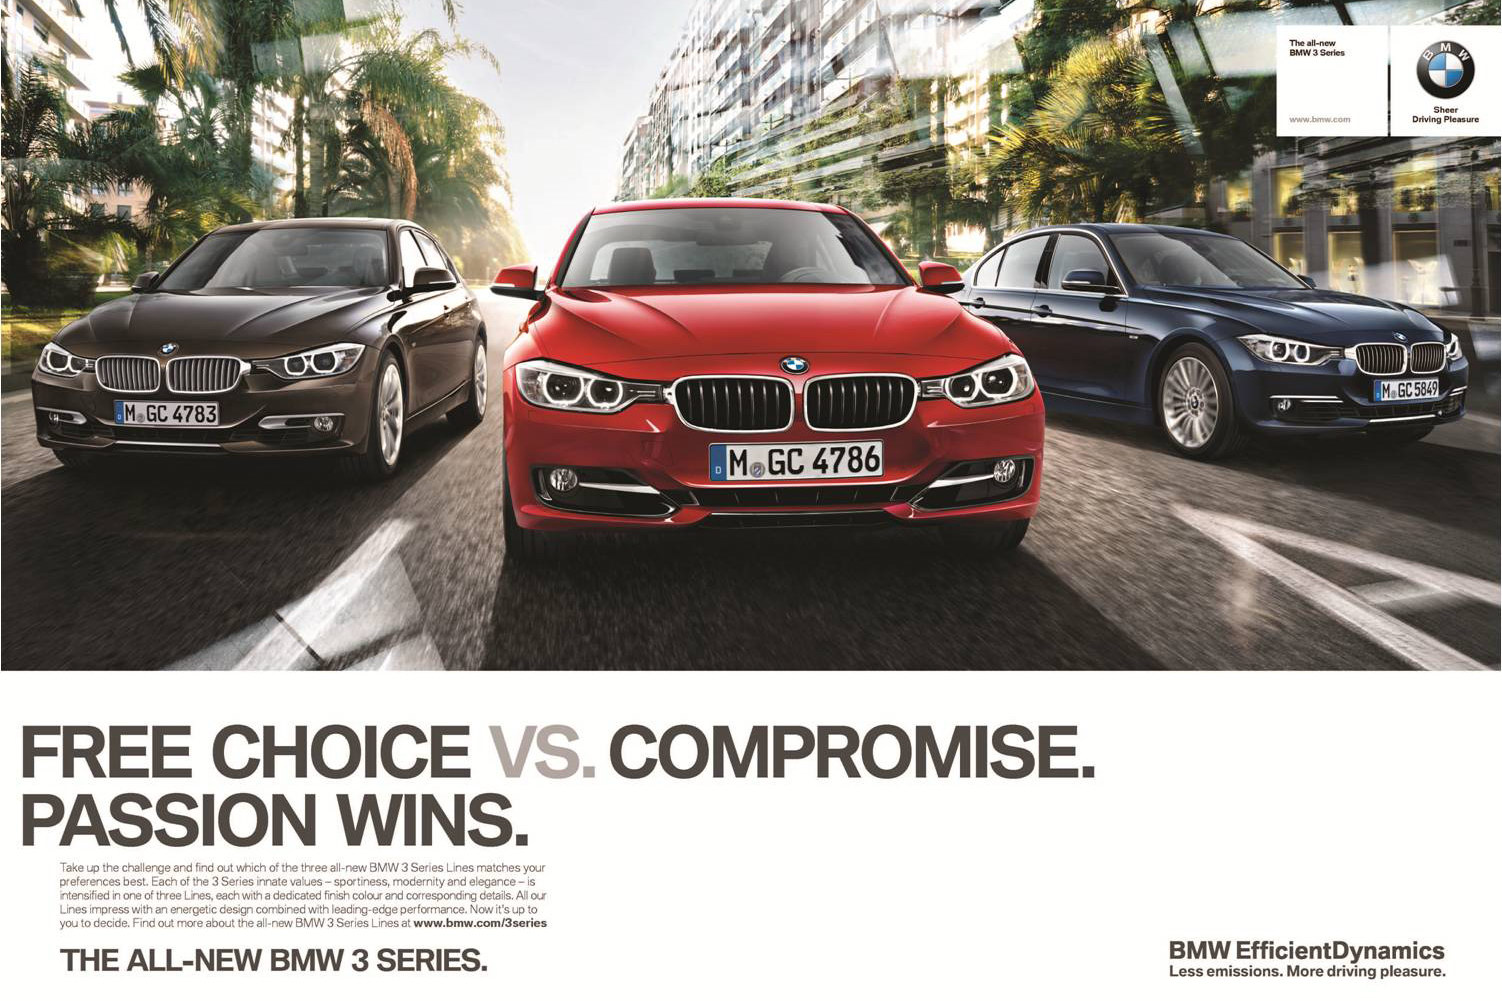 2012 BMW 3-Series F30 Marketing Campaign: Passion Wins ...